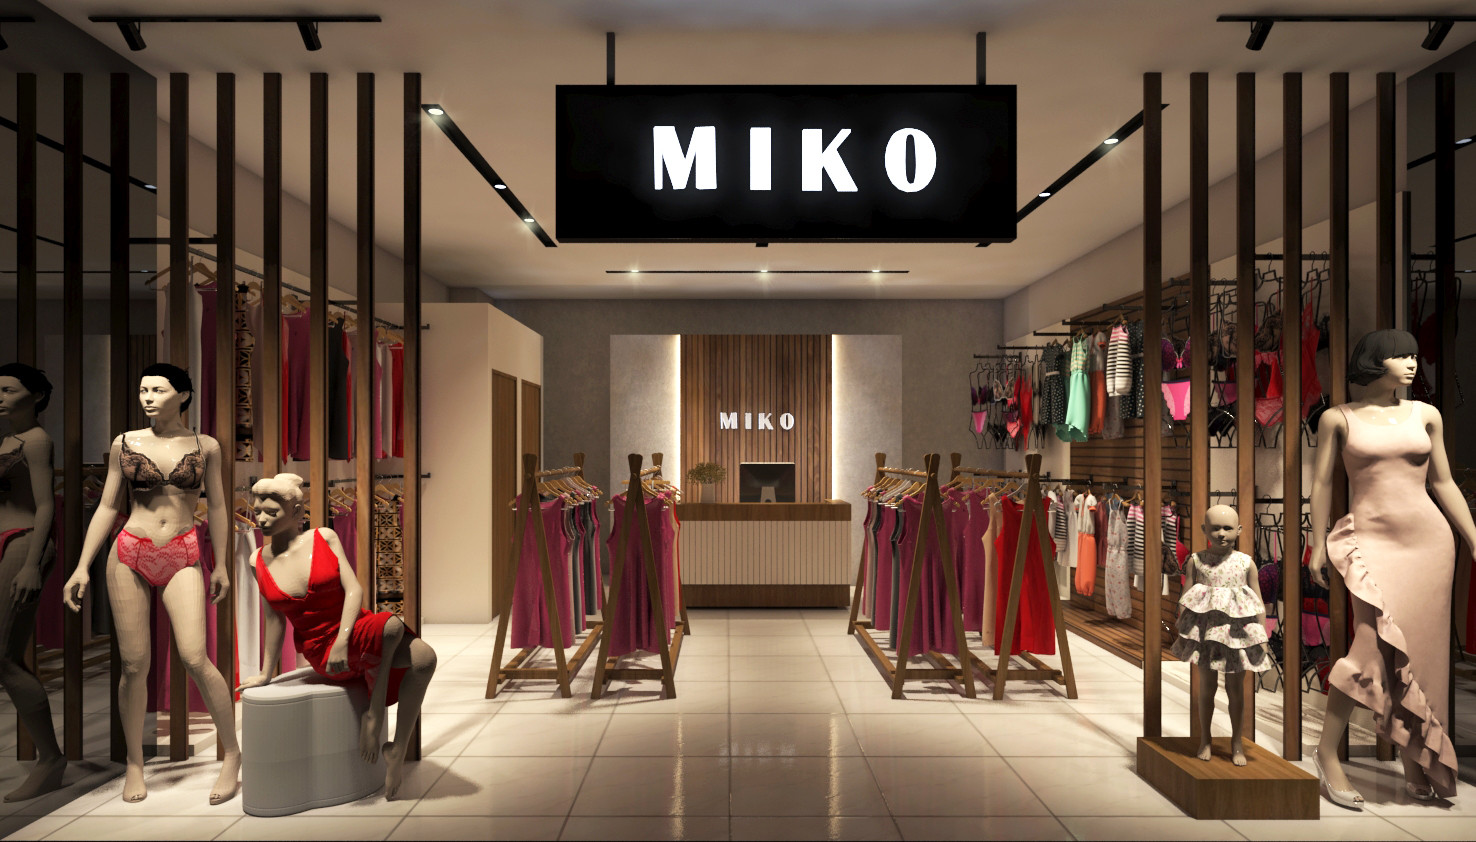 Miko Boutique store